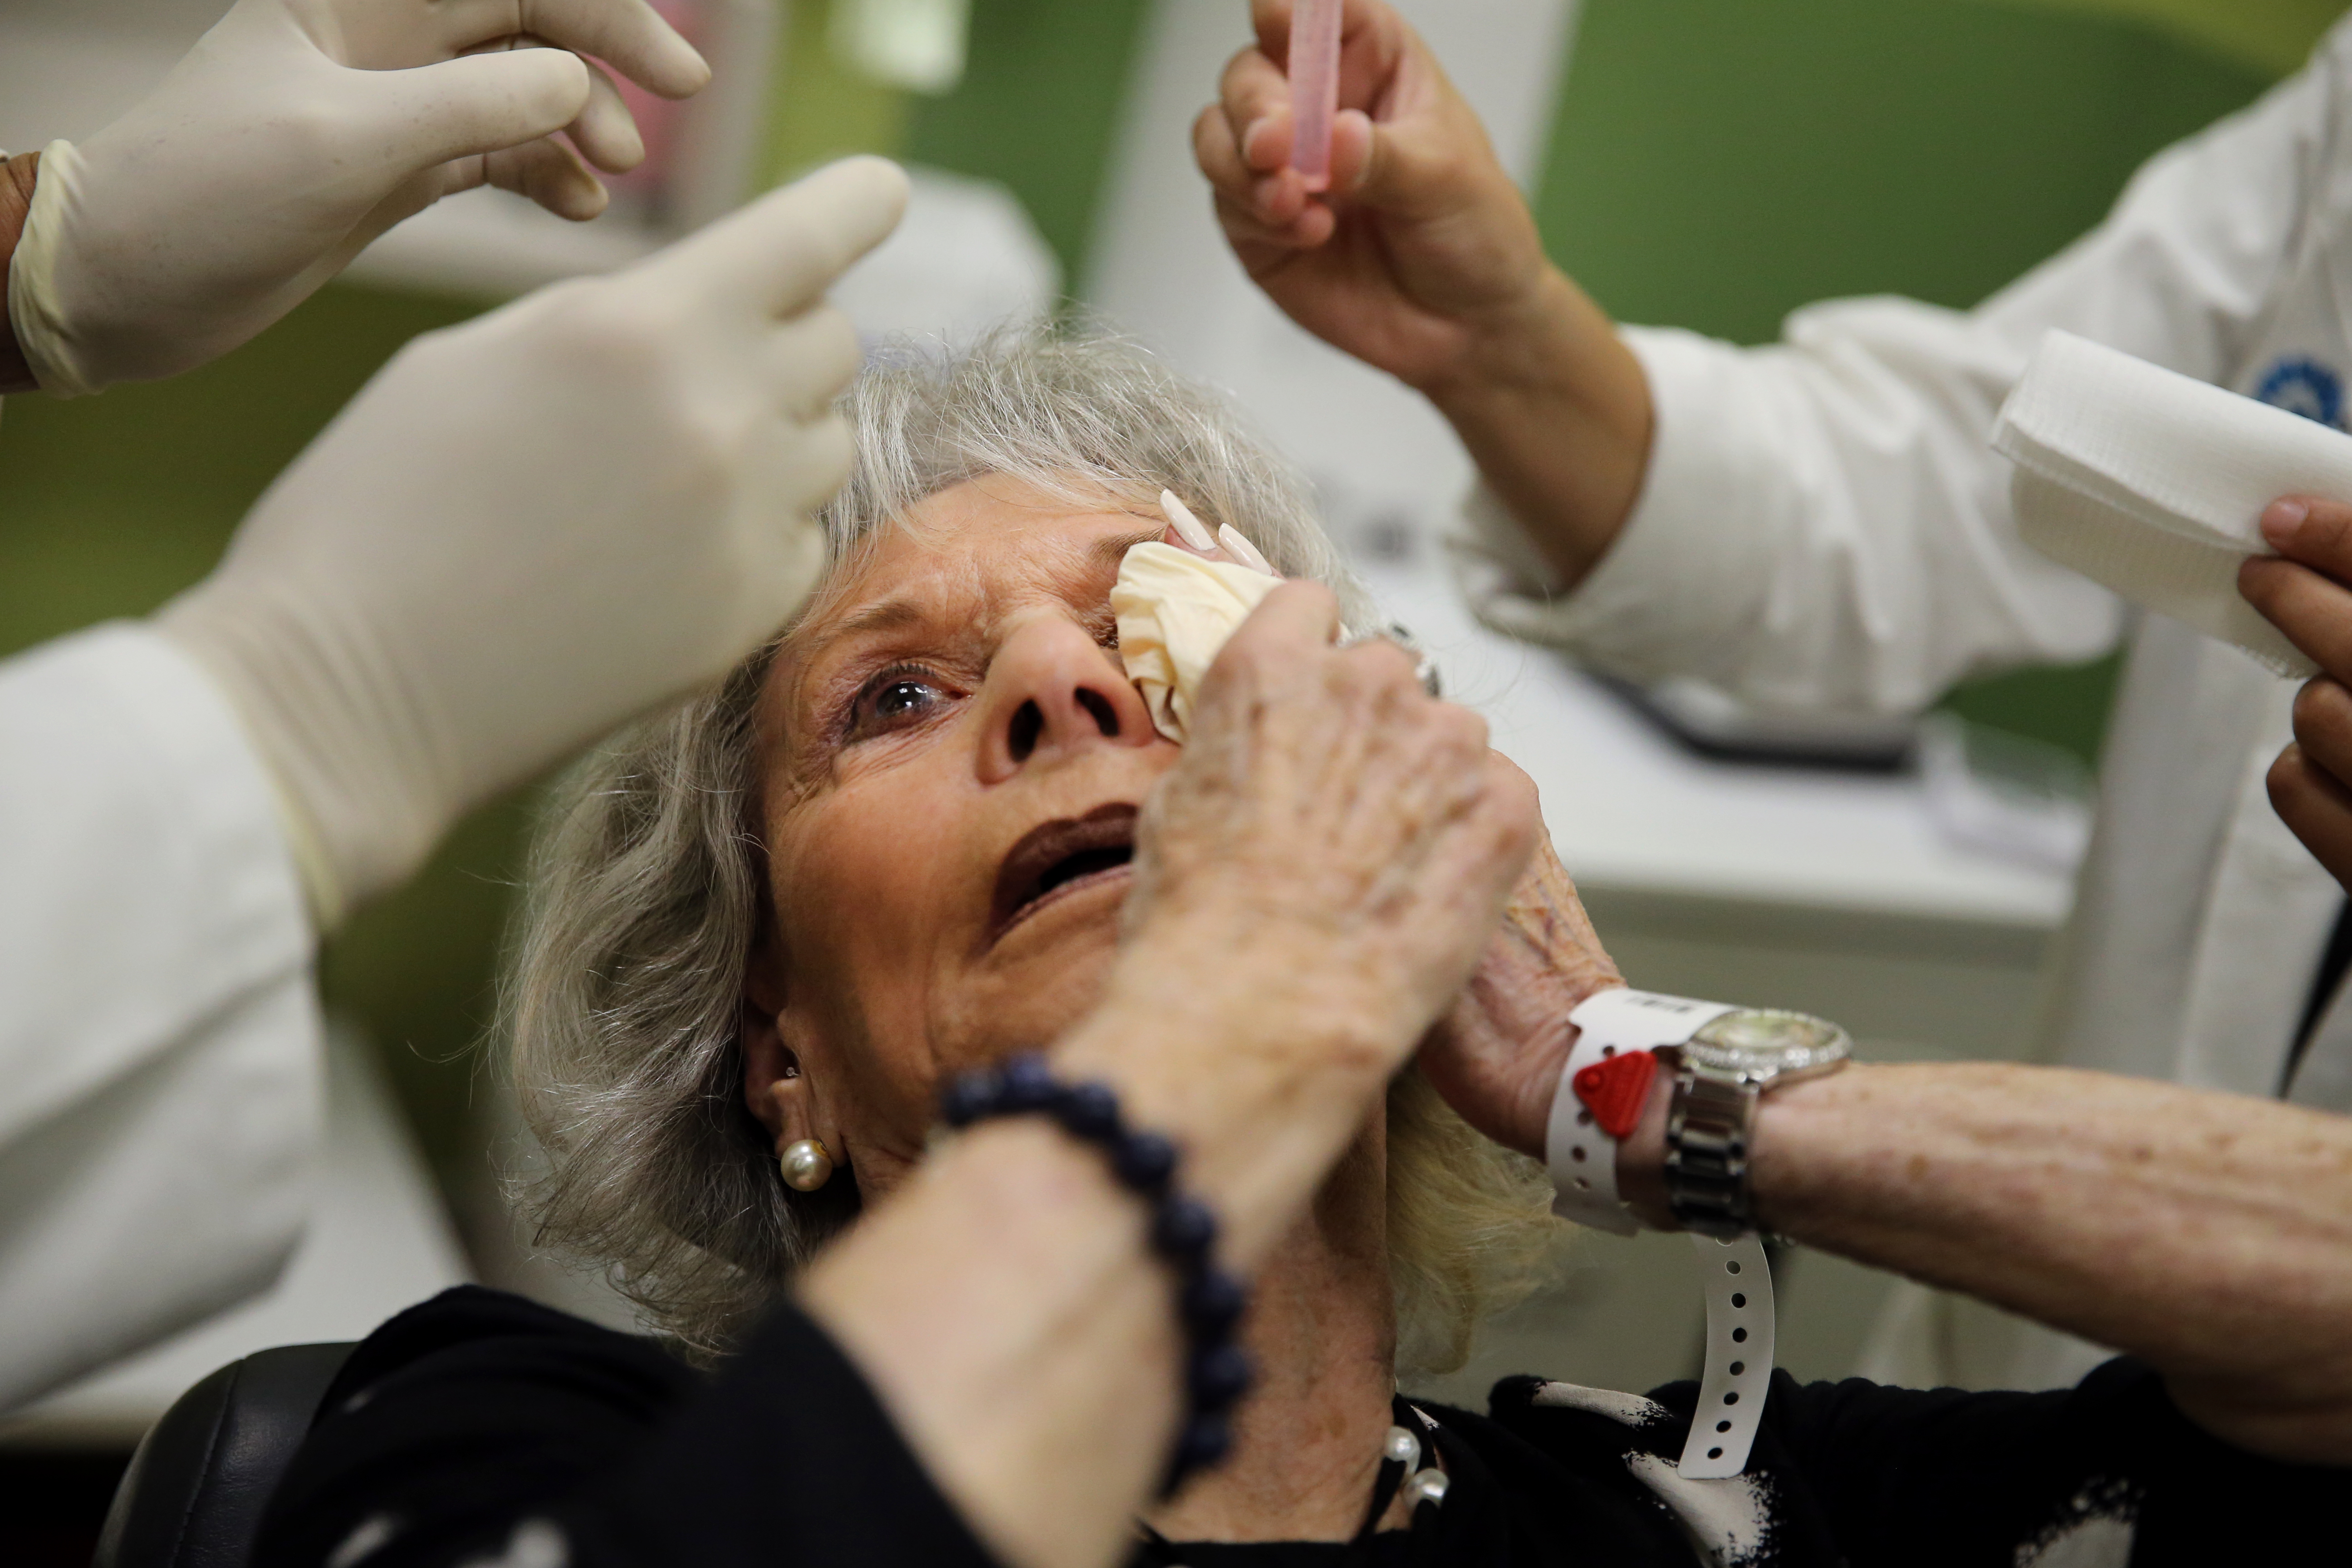 Hope for new macular degeneration treatments buoys patients - The